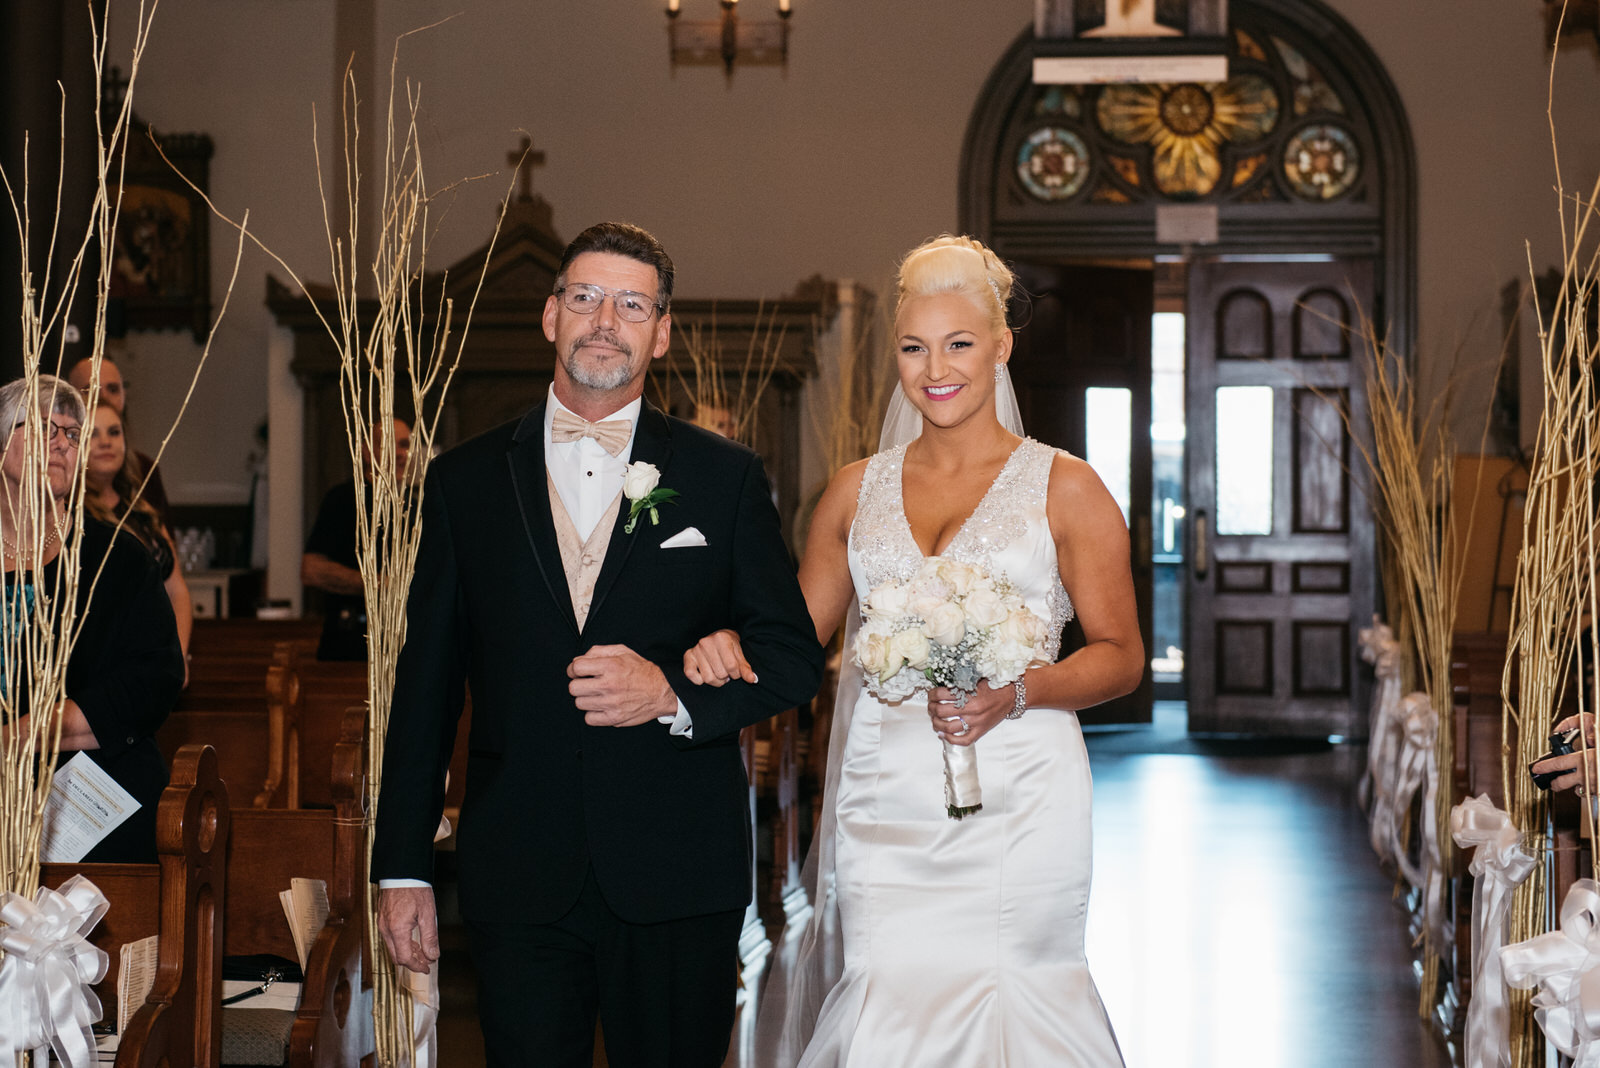 hilton_garden_inn_southpointe_pittsburgh_weddings_36.jpg